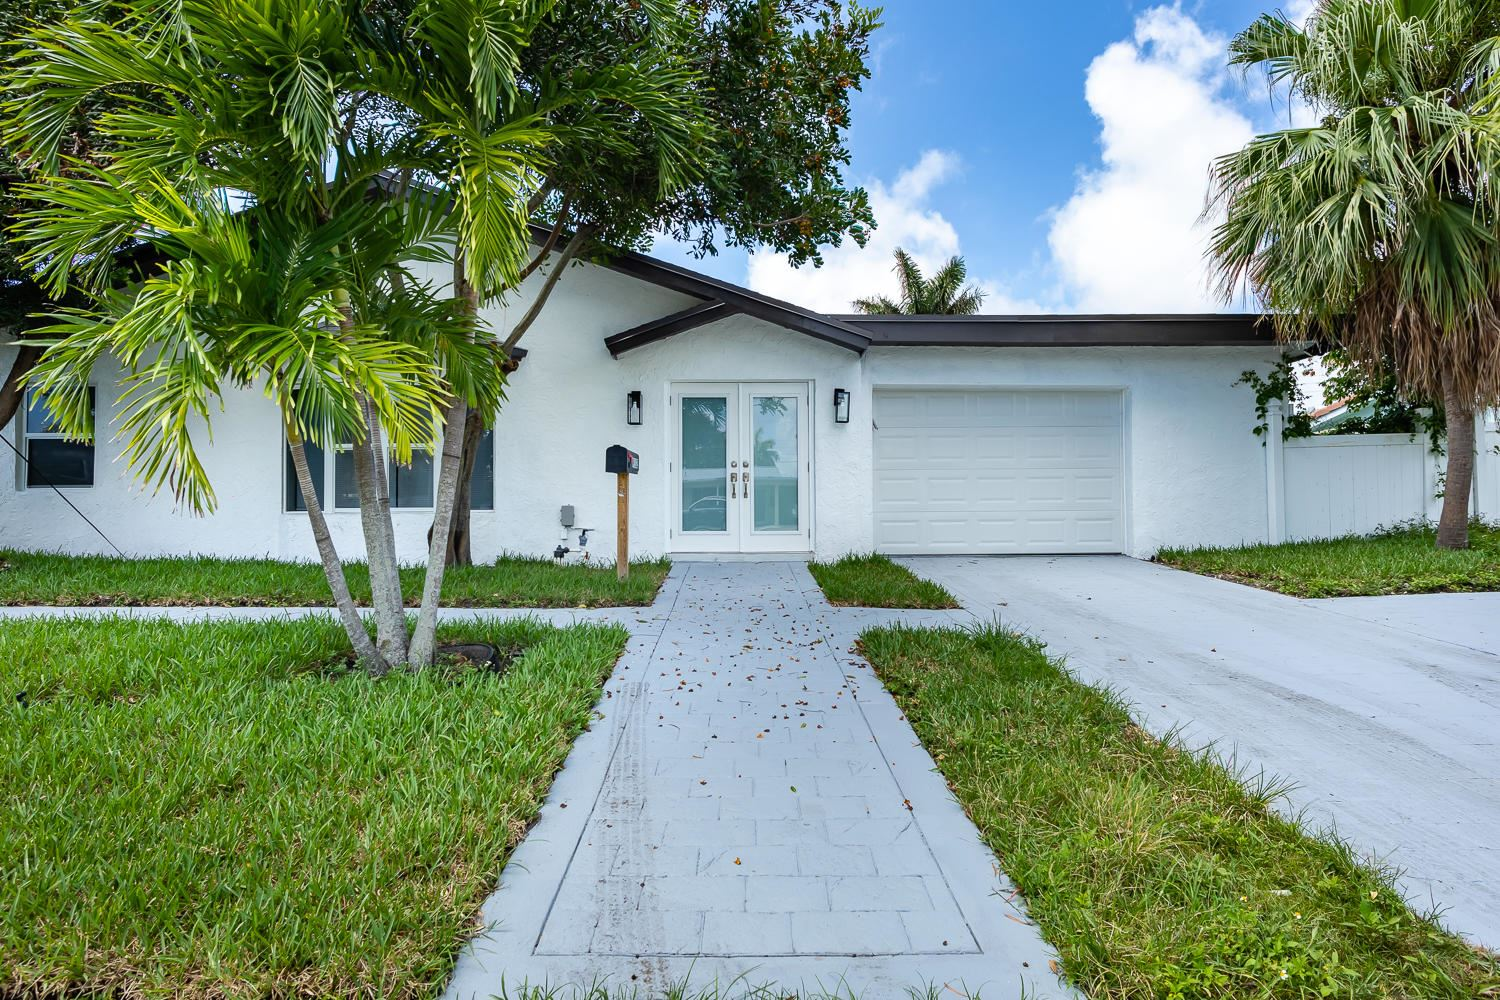 912 SE 15th Court, Deerfield Beach, FL 33441 - #: RX-10633085